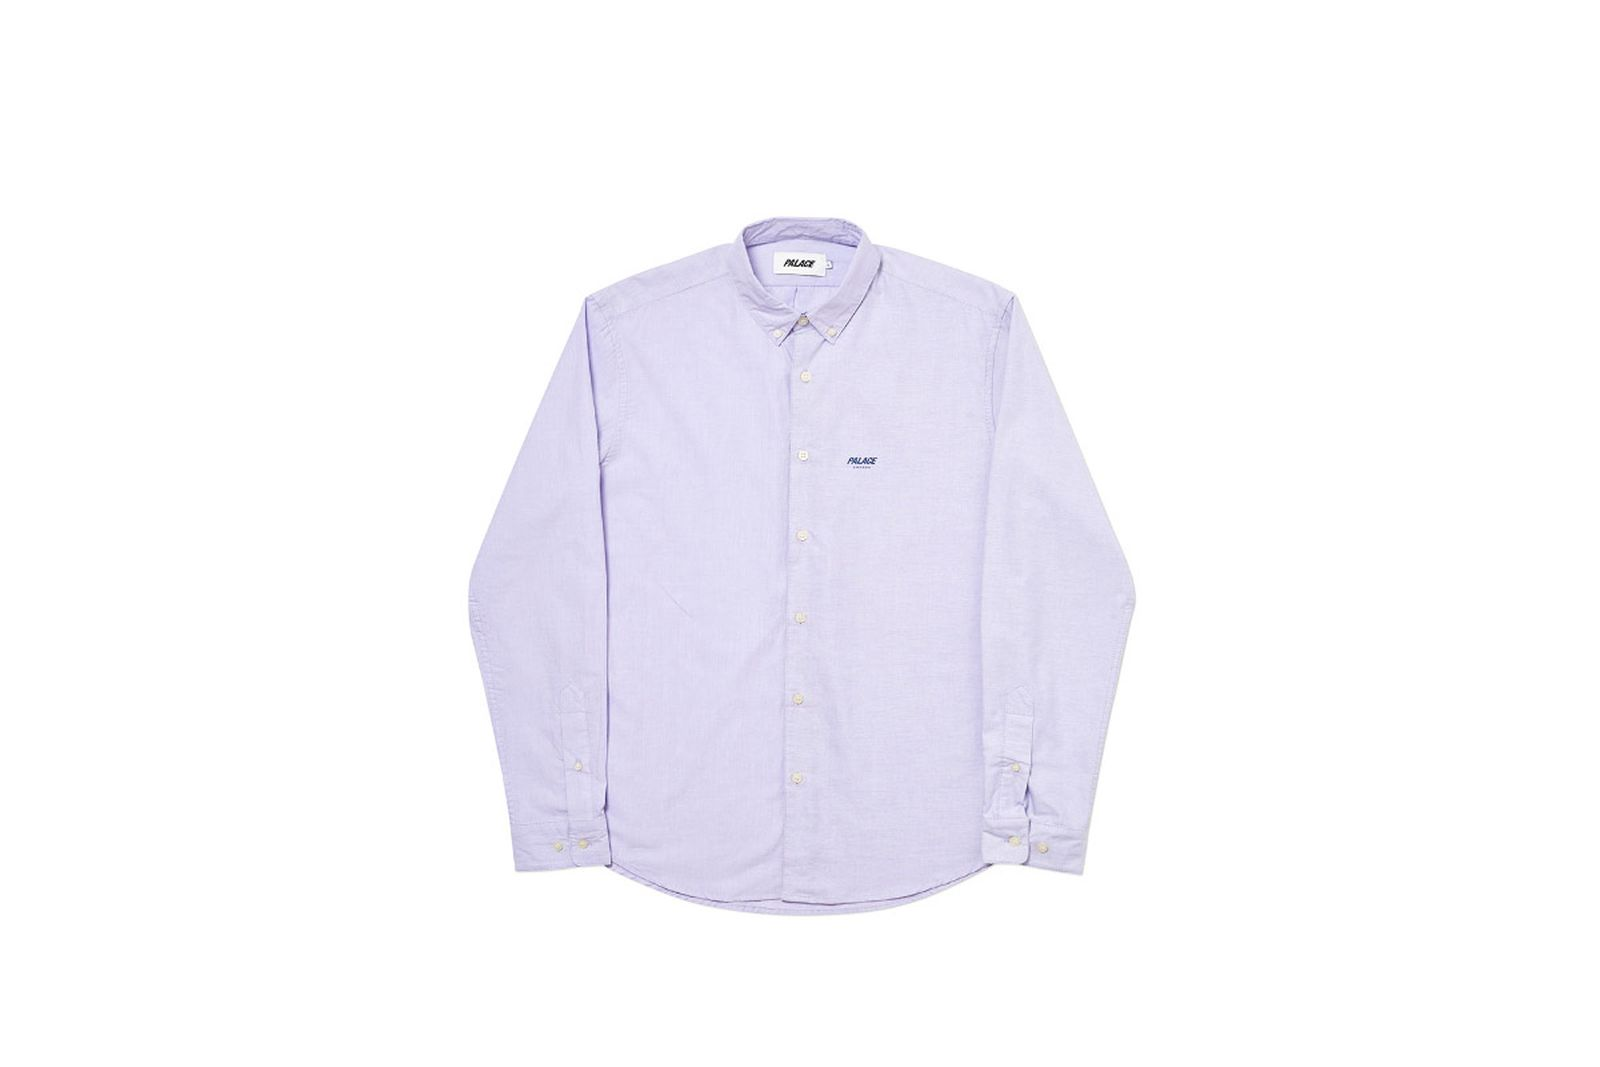 Palace 2019 Autumn Shirt Heavy Blender lilac front fw19